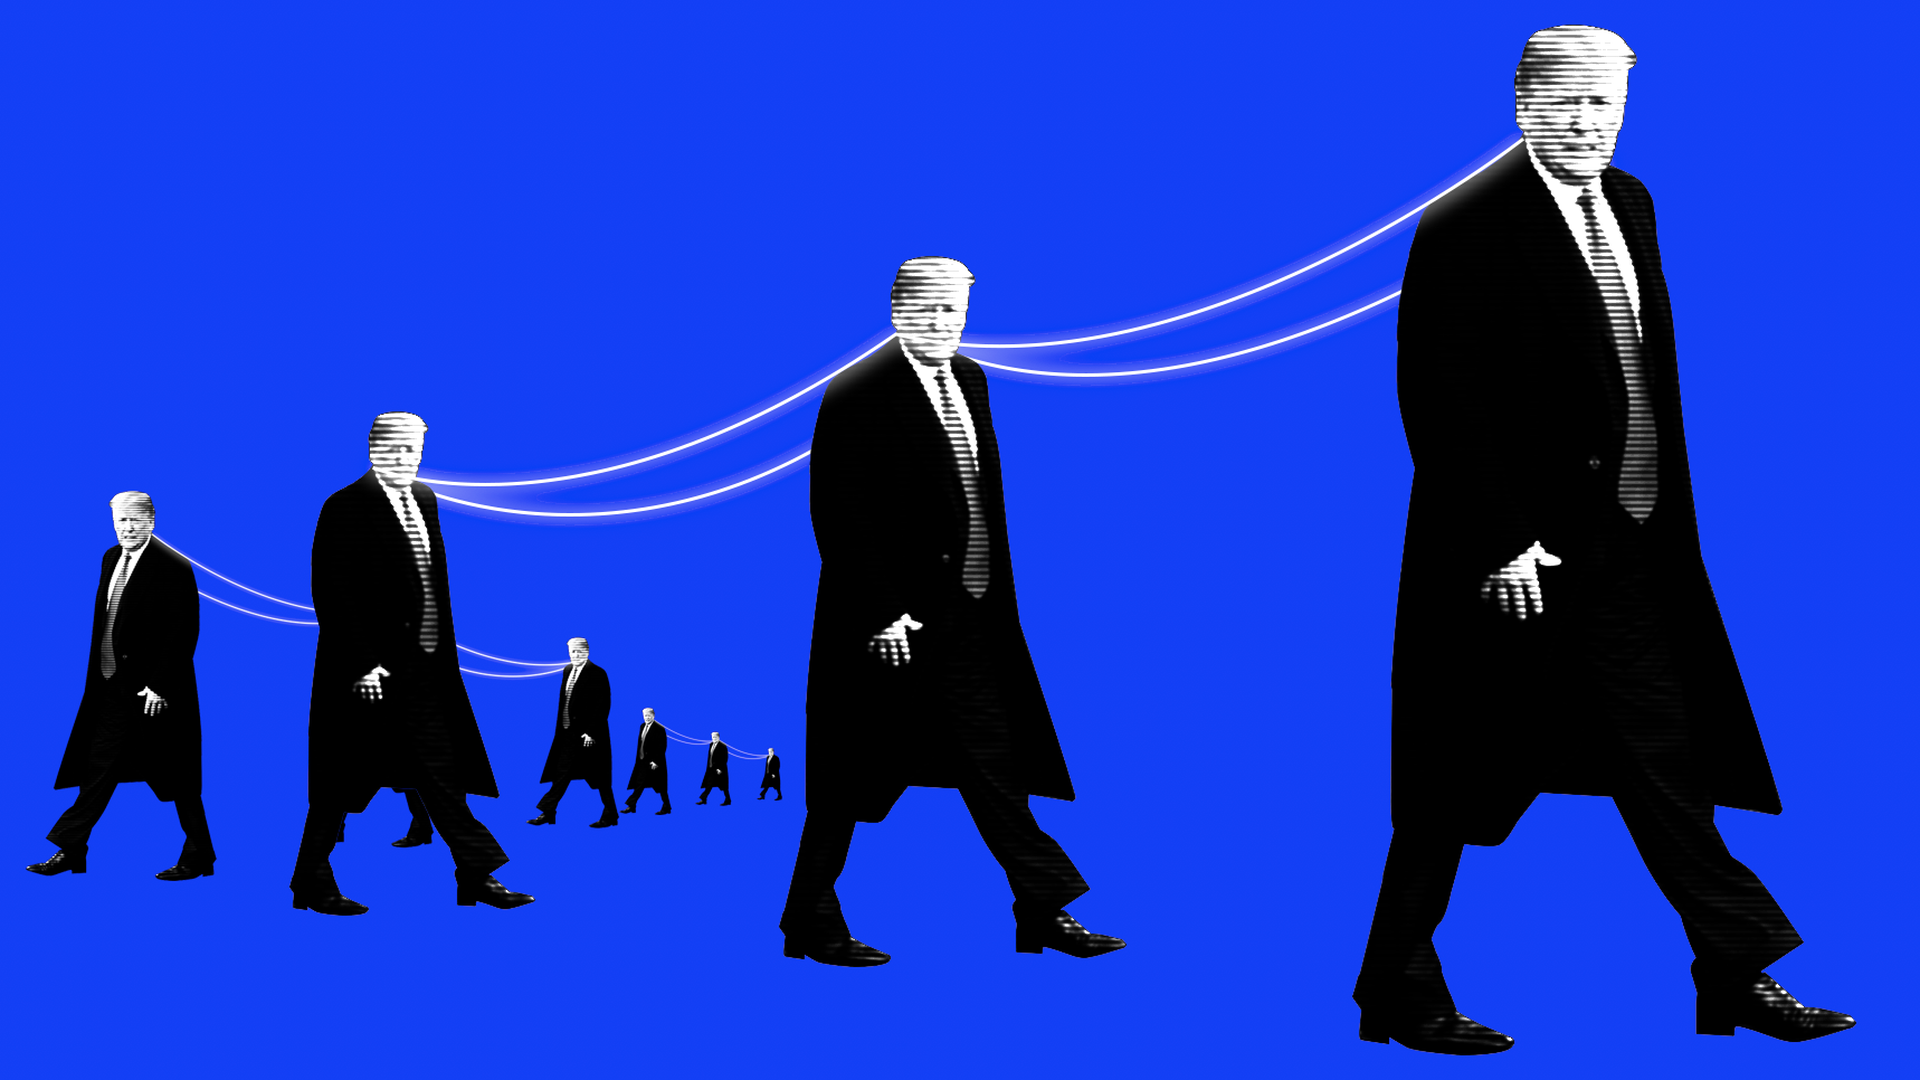 A group of President Trumps with power lines strung between them